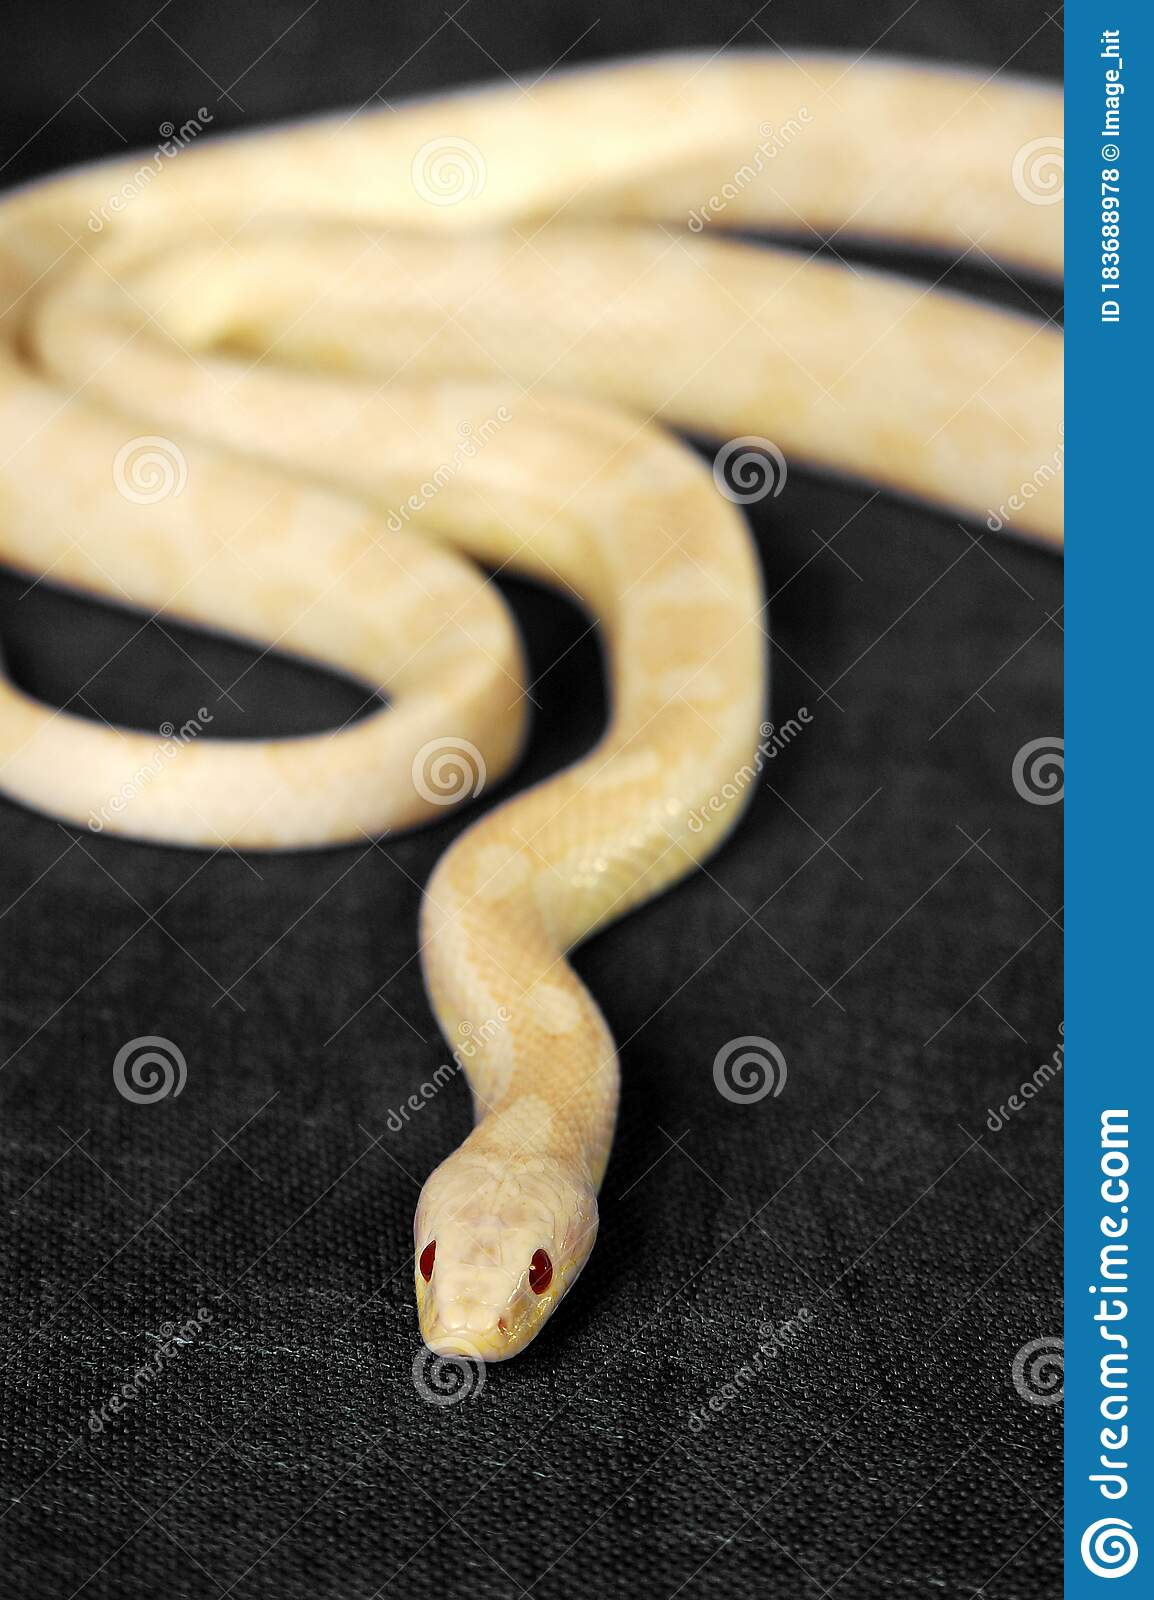 A White Snake With Red Eyes Gliding On The Floor Stock Photo Image Of Animals Poisonous 183688978